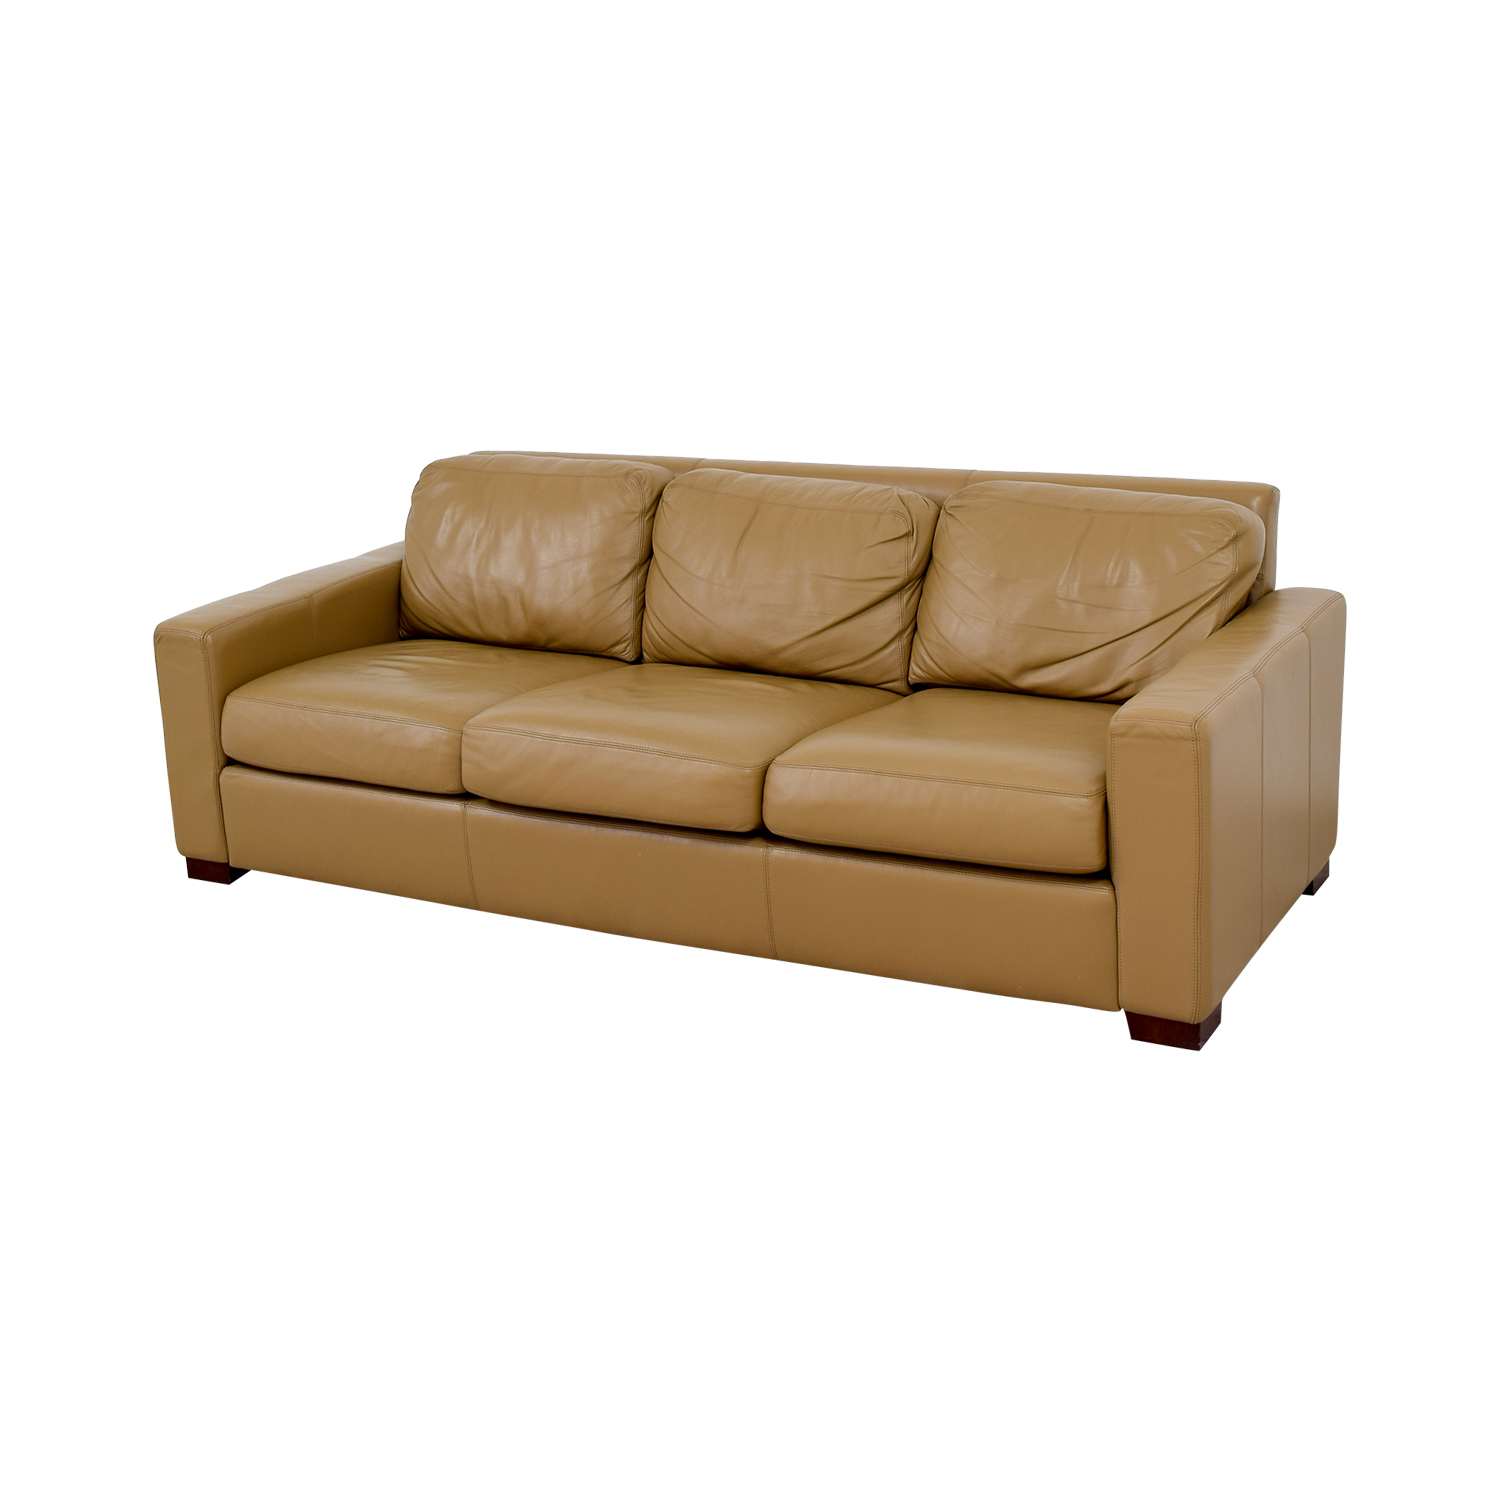 79 off design within reach design within reach tan for Classic sofa design